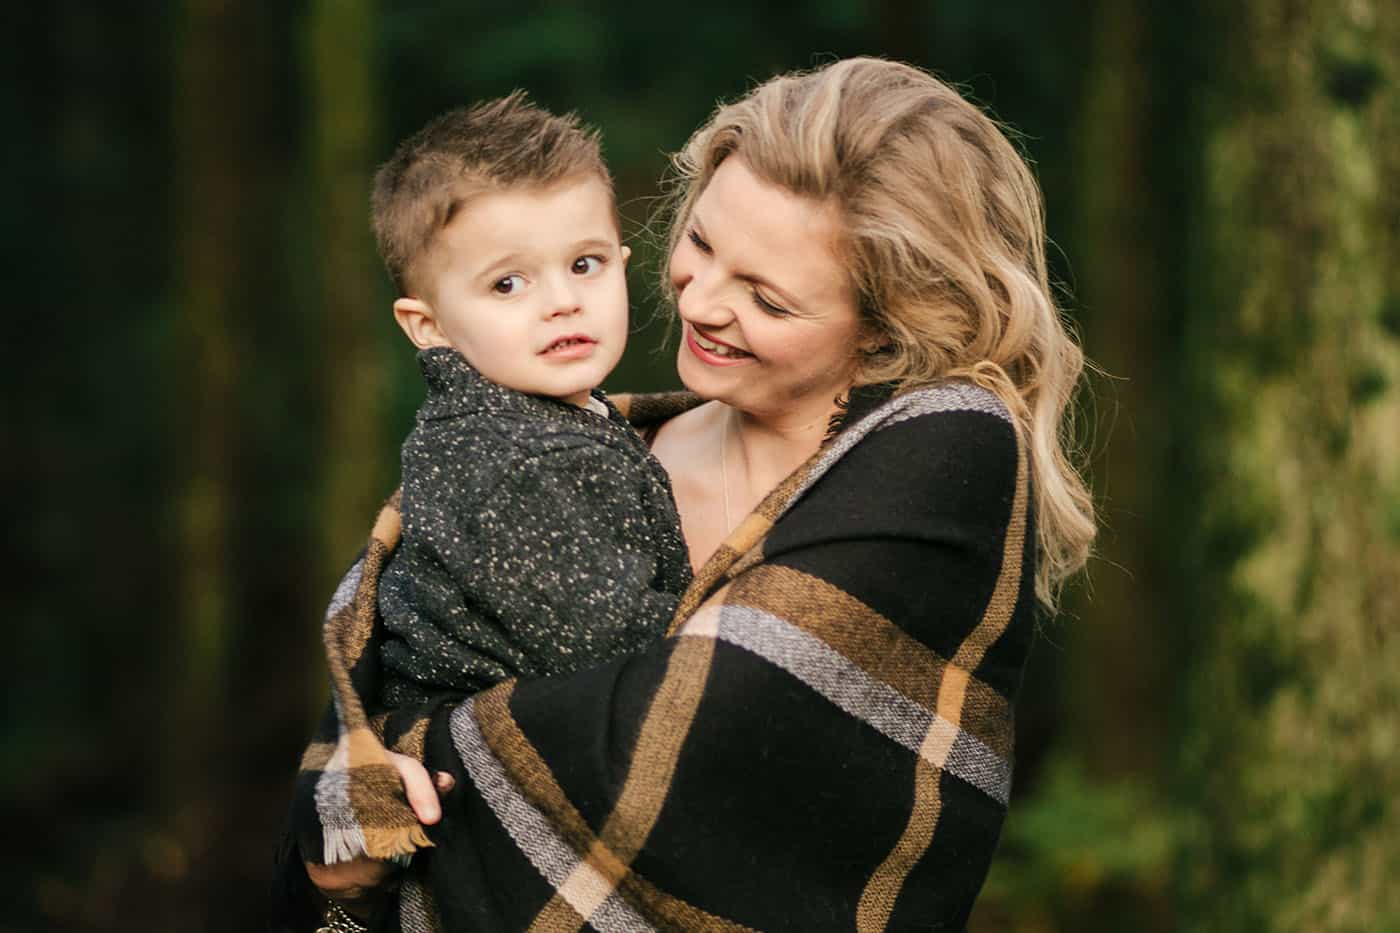 A mom holds her young son while wrapped in a wool blanket.